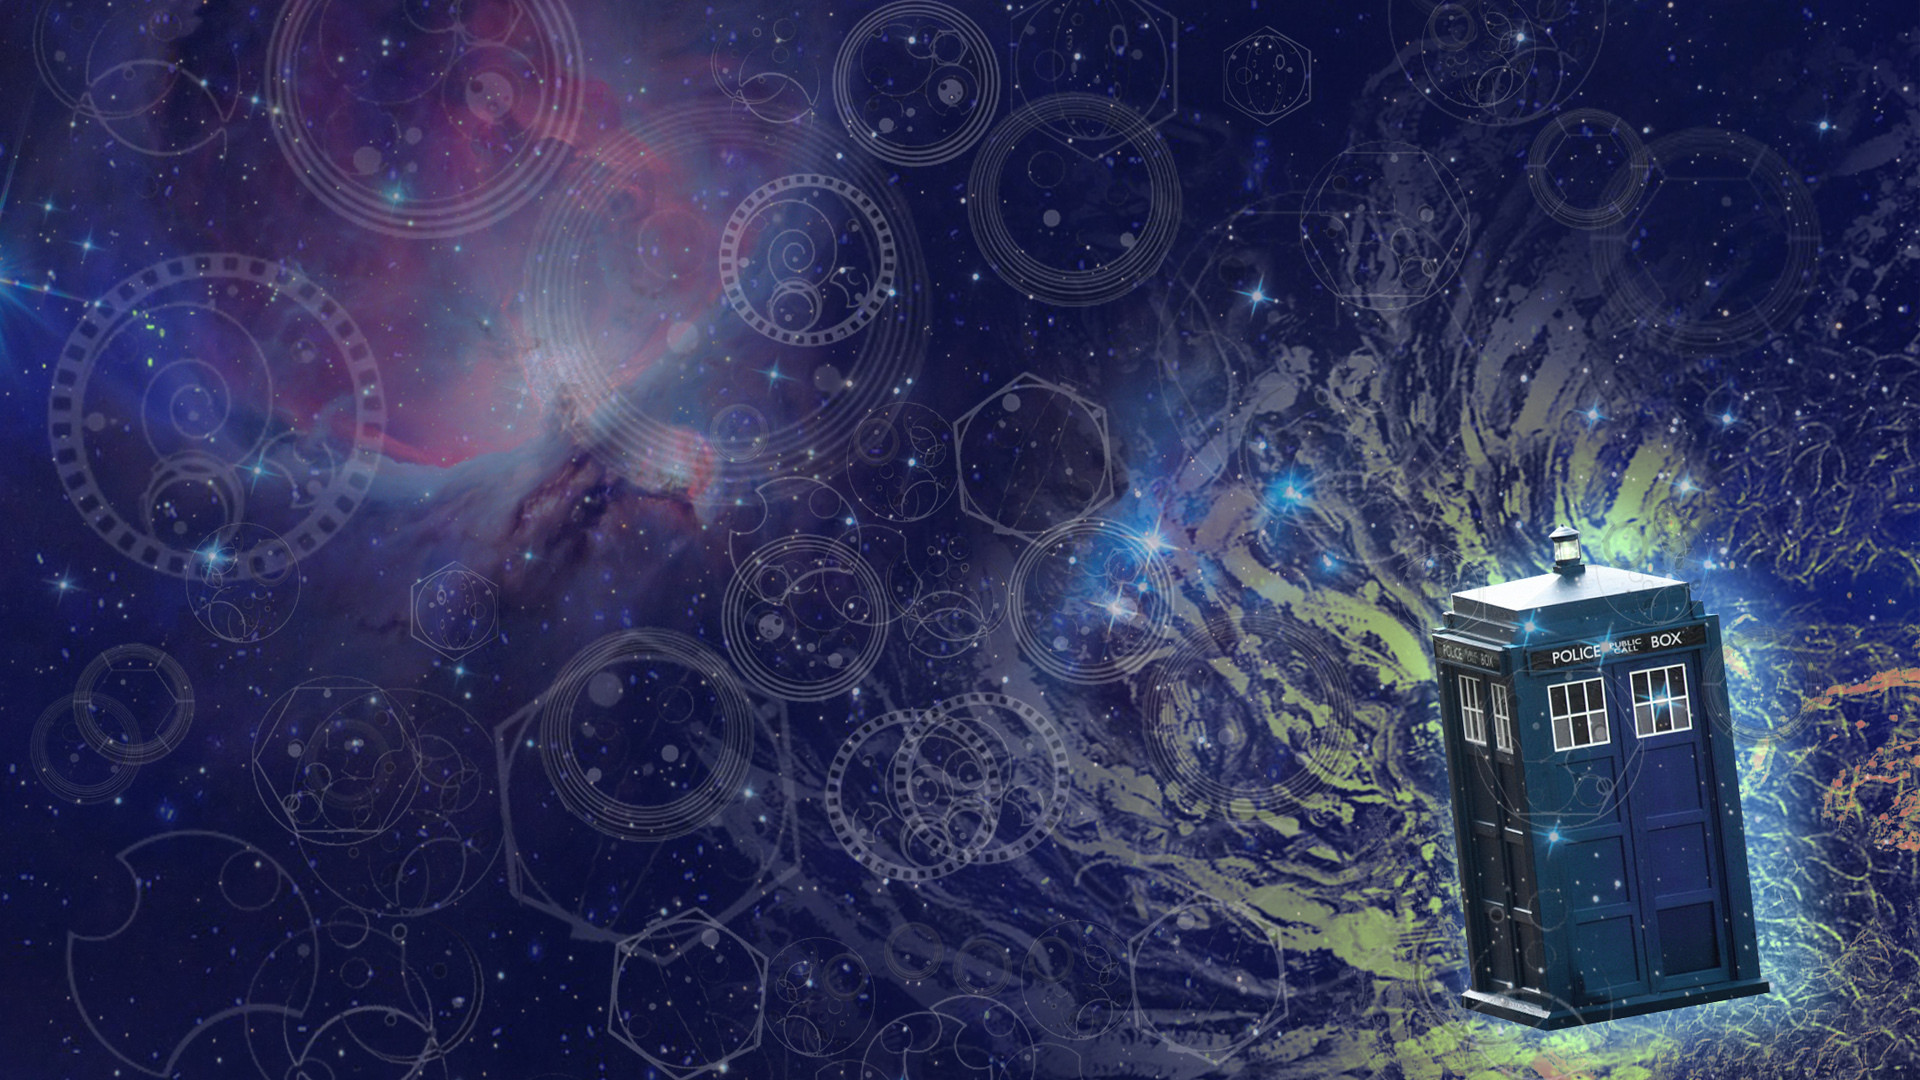 police box, movie, abstract, doctor who, art, paint, hd wallpaper